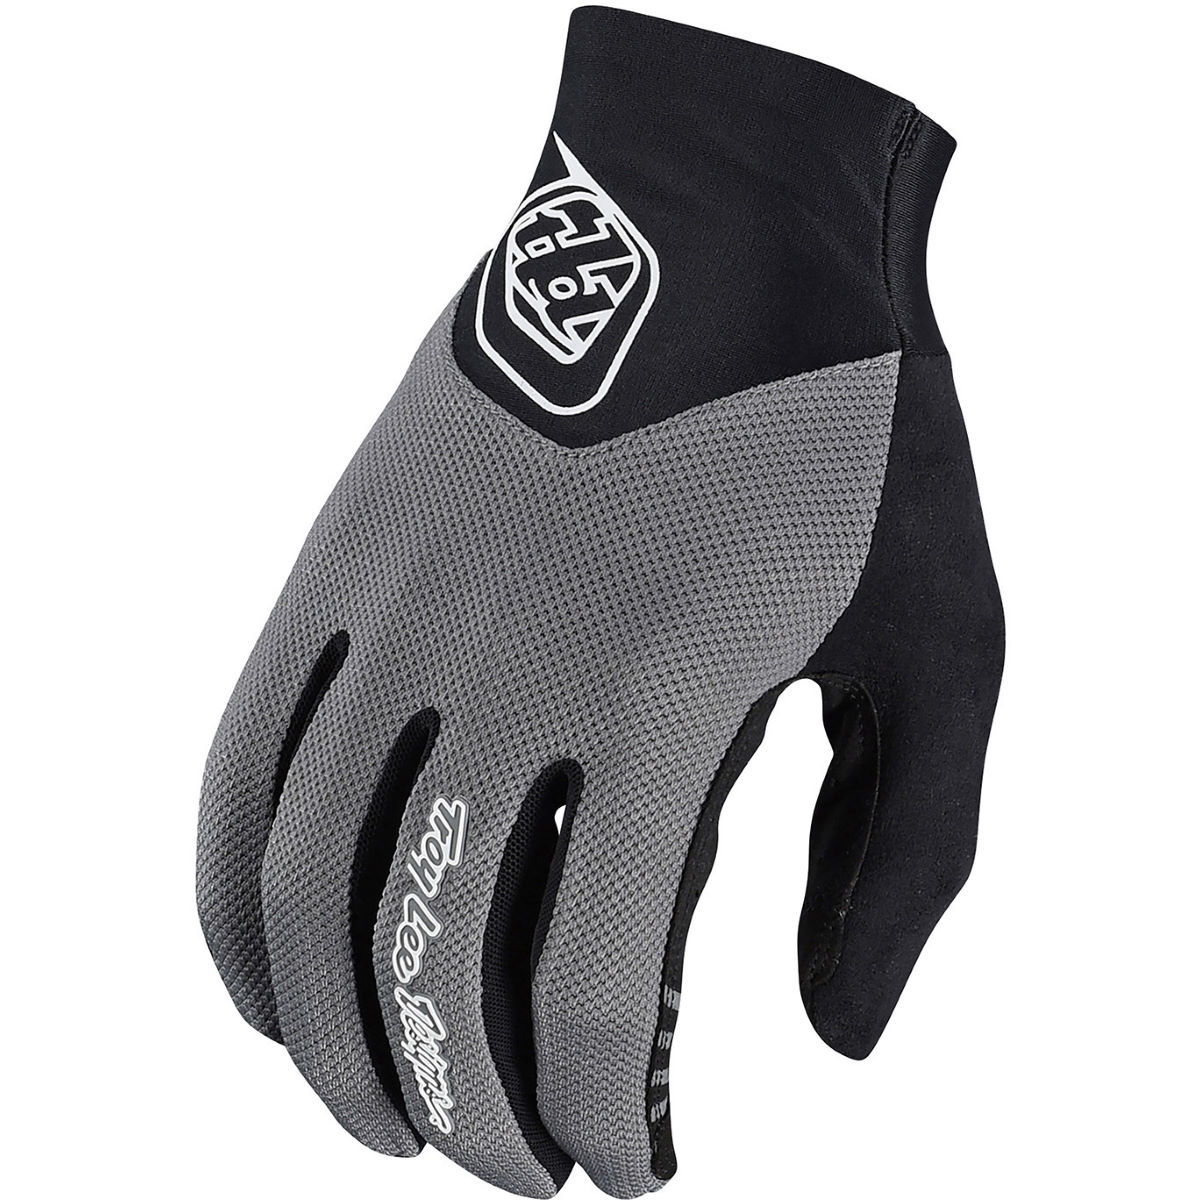 Troy Lee Designs Ace 2.0 Gloves  Grey S - 2XL Gray